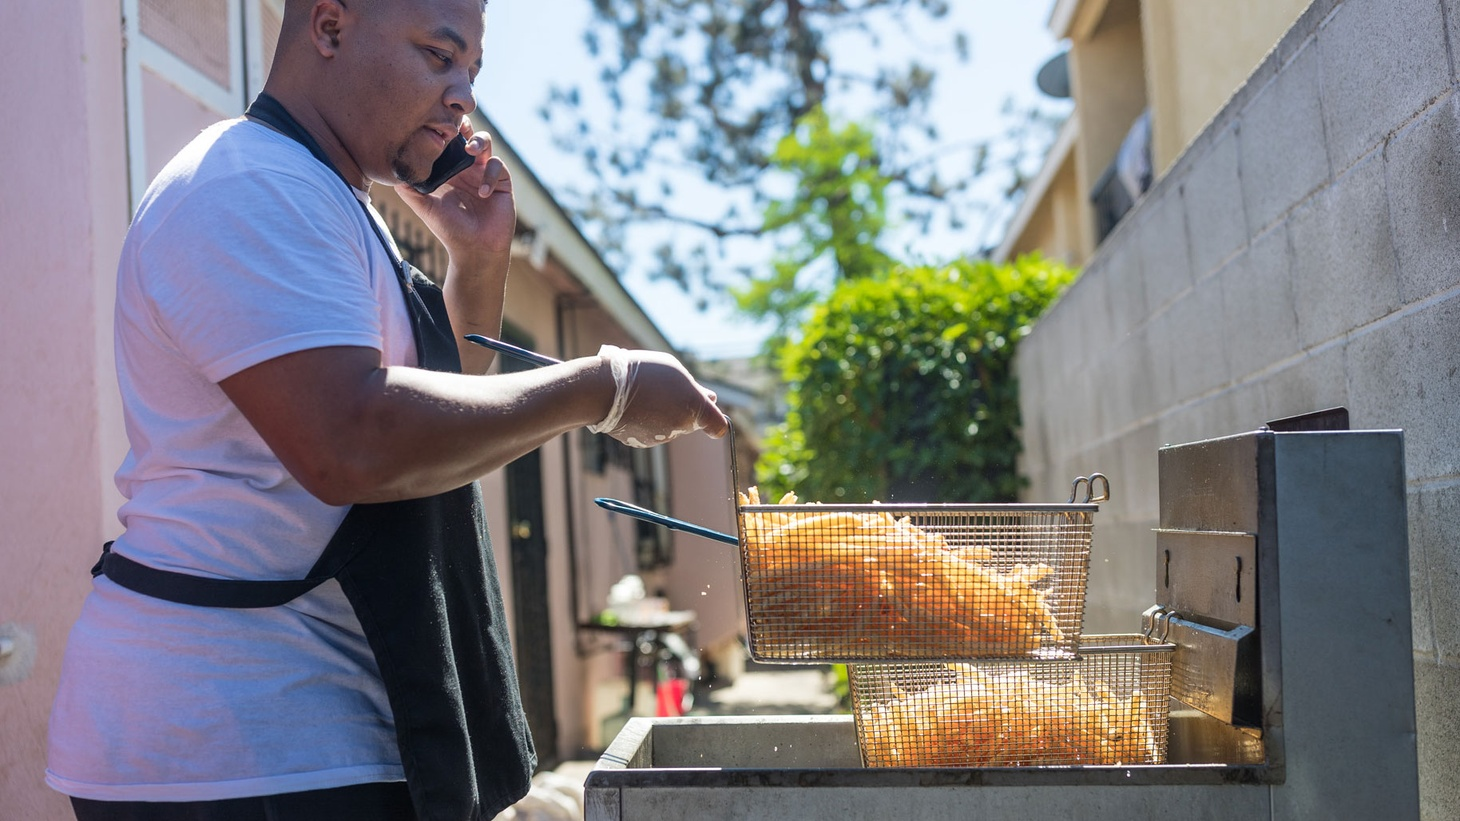 Throughout South Los Angeles and the surrounding neighborhoods there's a growing community of underground home chefs who sell food on Instagram. One of those chefs, a guy who goes by the name Mr. Fries Man, specializes in loaded french fries.